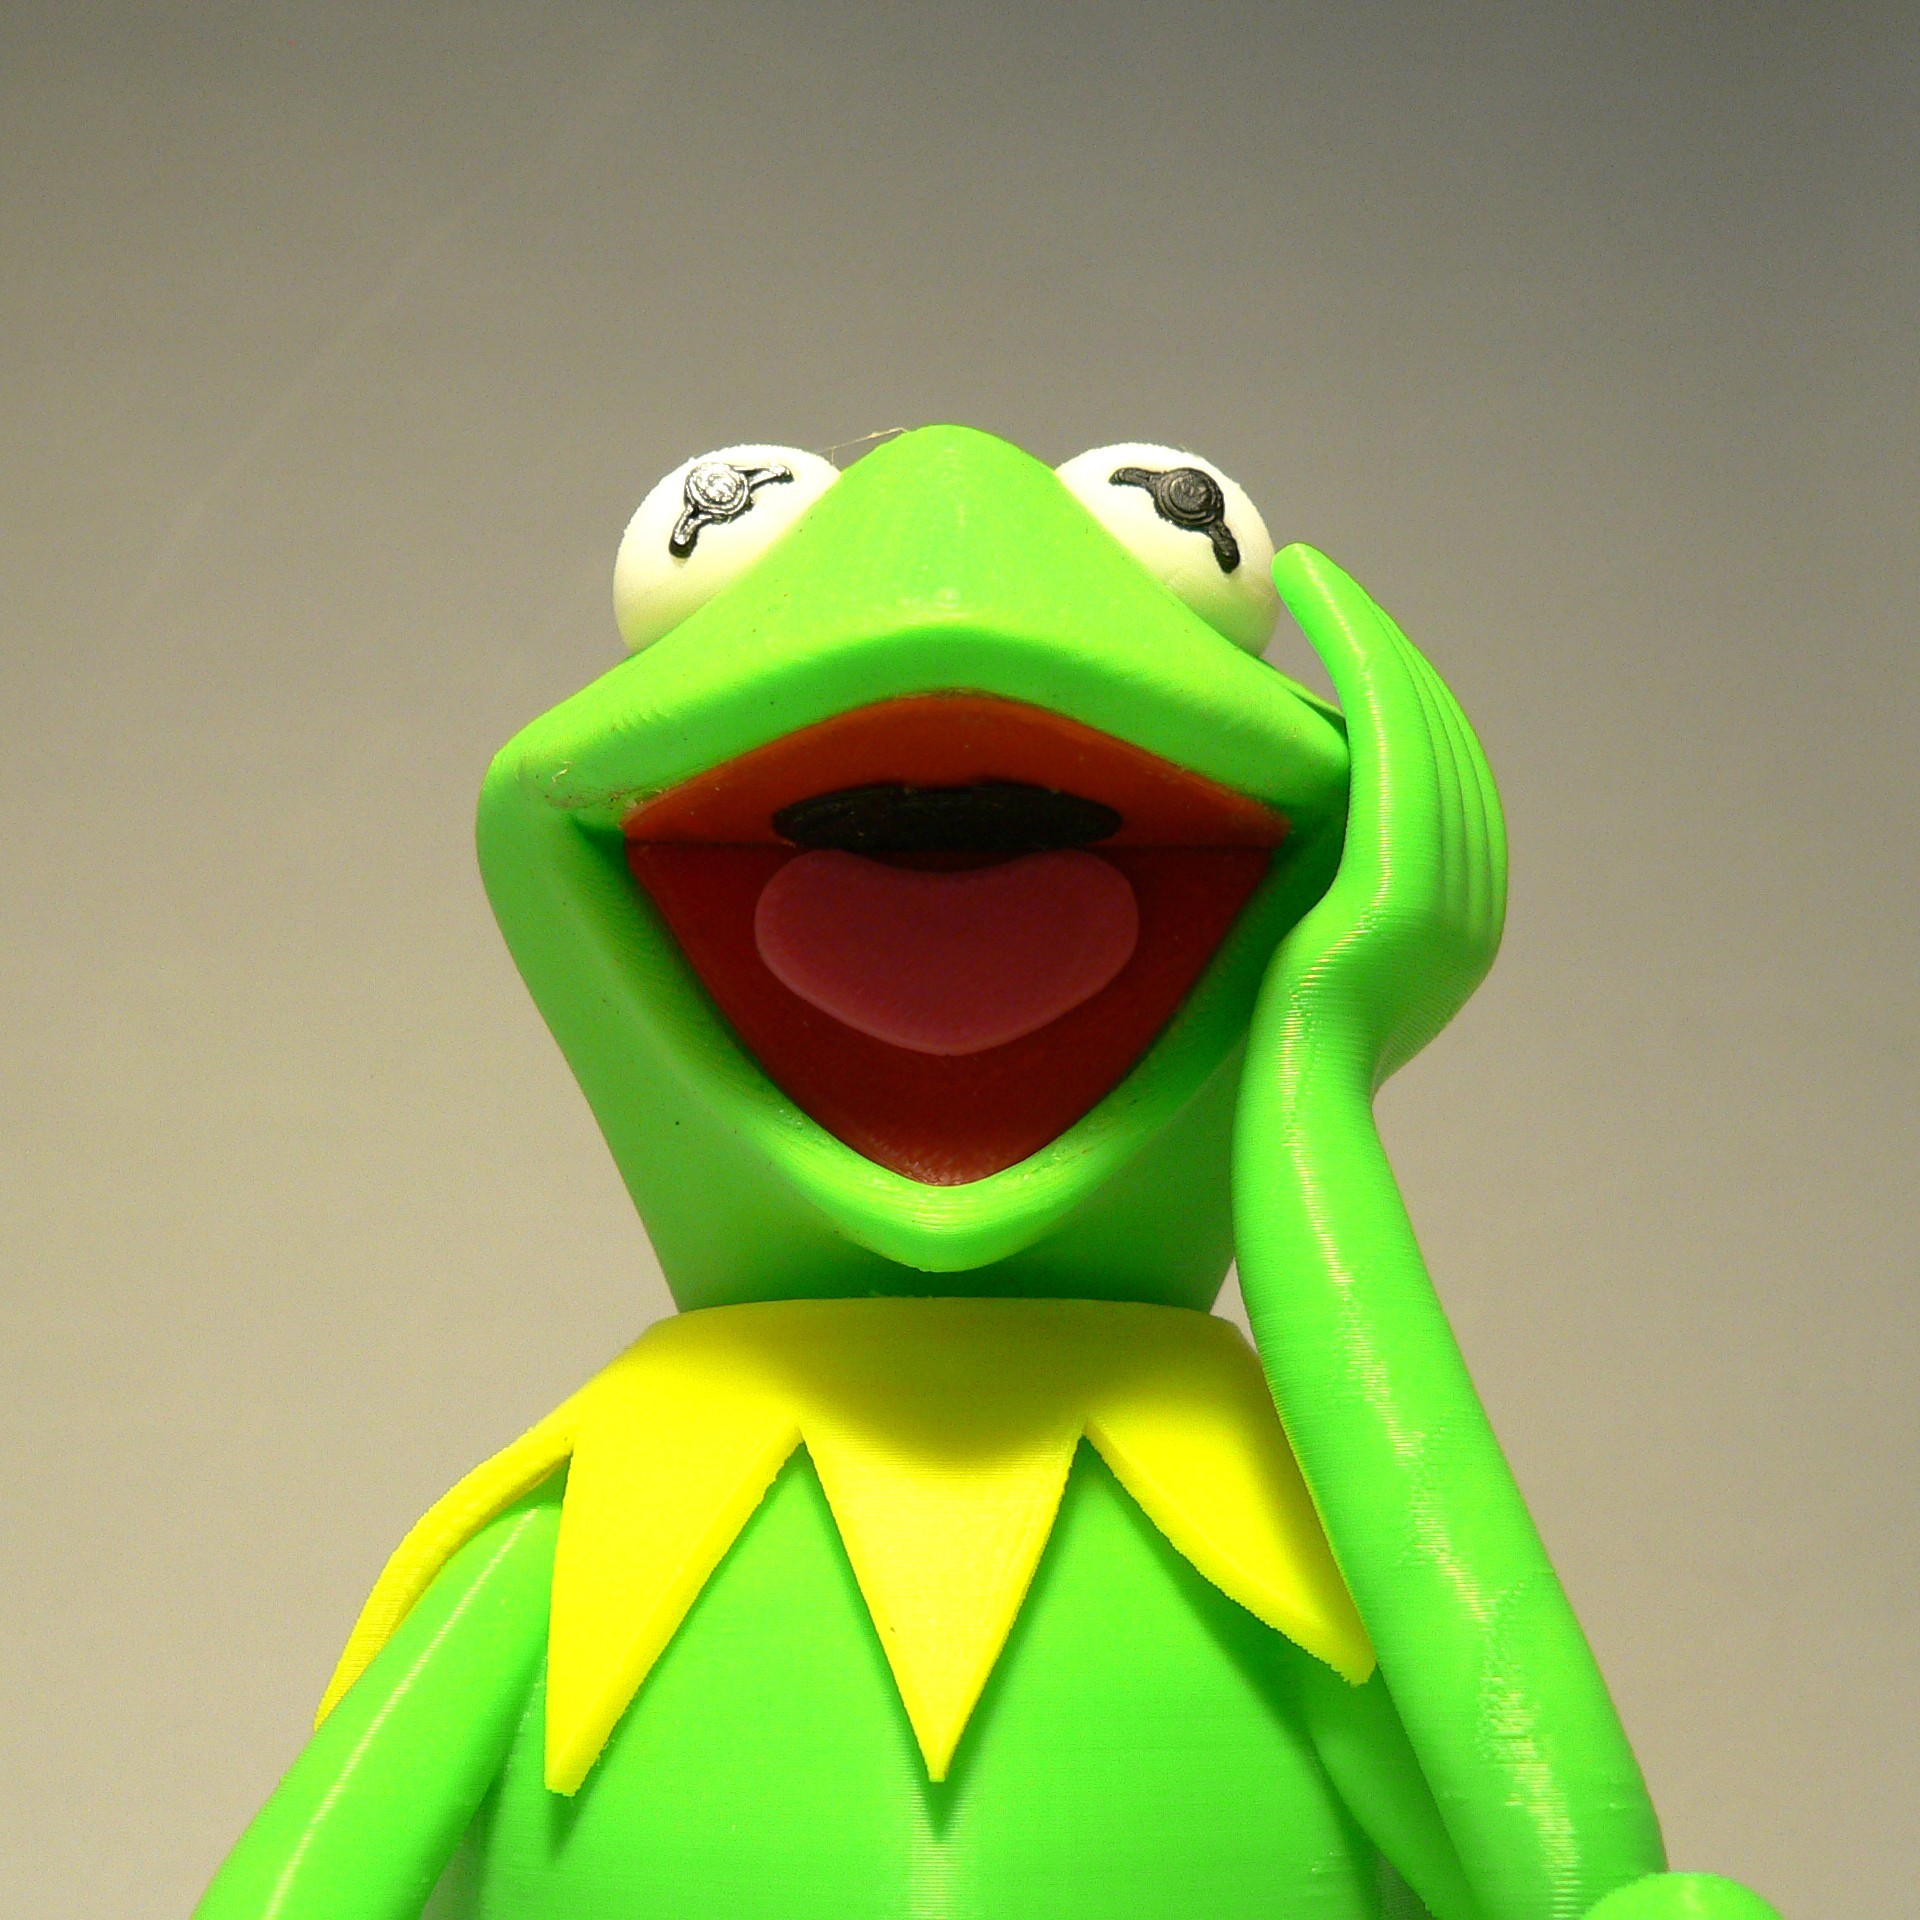 kermit mouth1.jpg Download free STL file Kermit the Frog • 3D printable model, reddadsteve